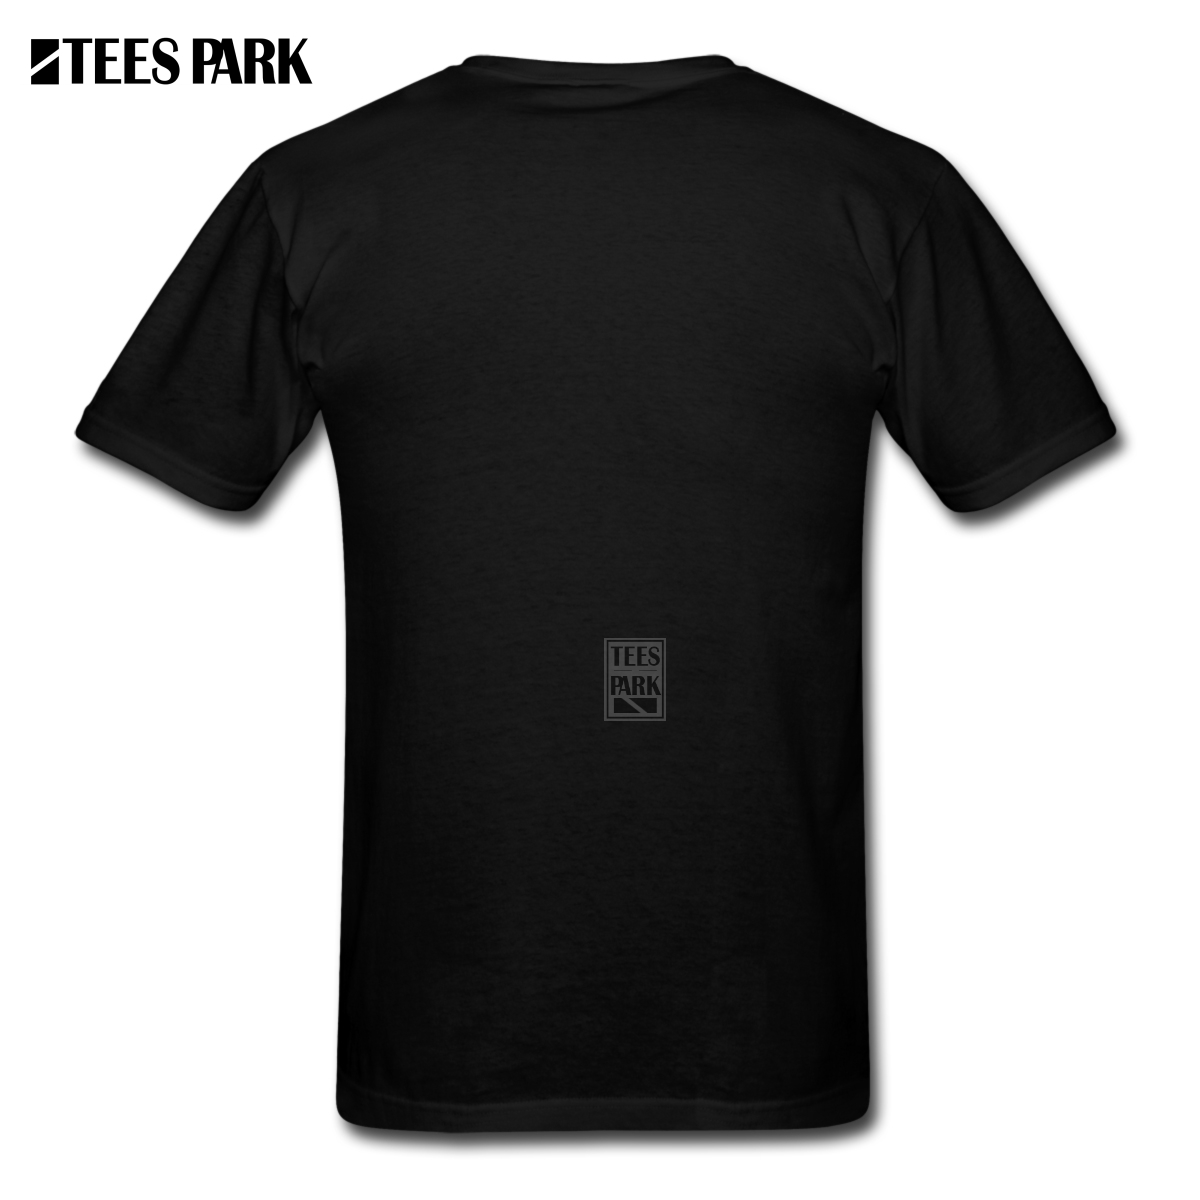 Designer T-Shirt Male Let It Rick Album Cover Rick and Morty T Shirt O Neck Tee Organnic Cotton Short Sleeved Men T-Shirts